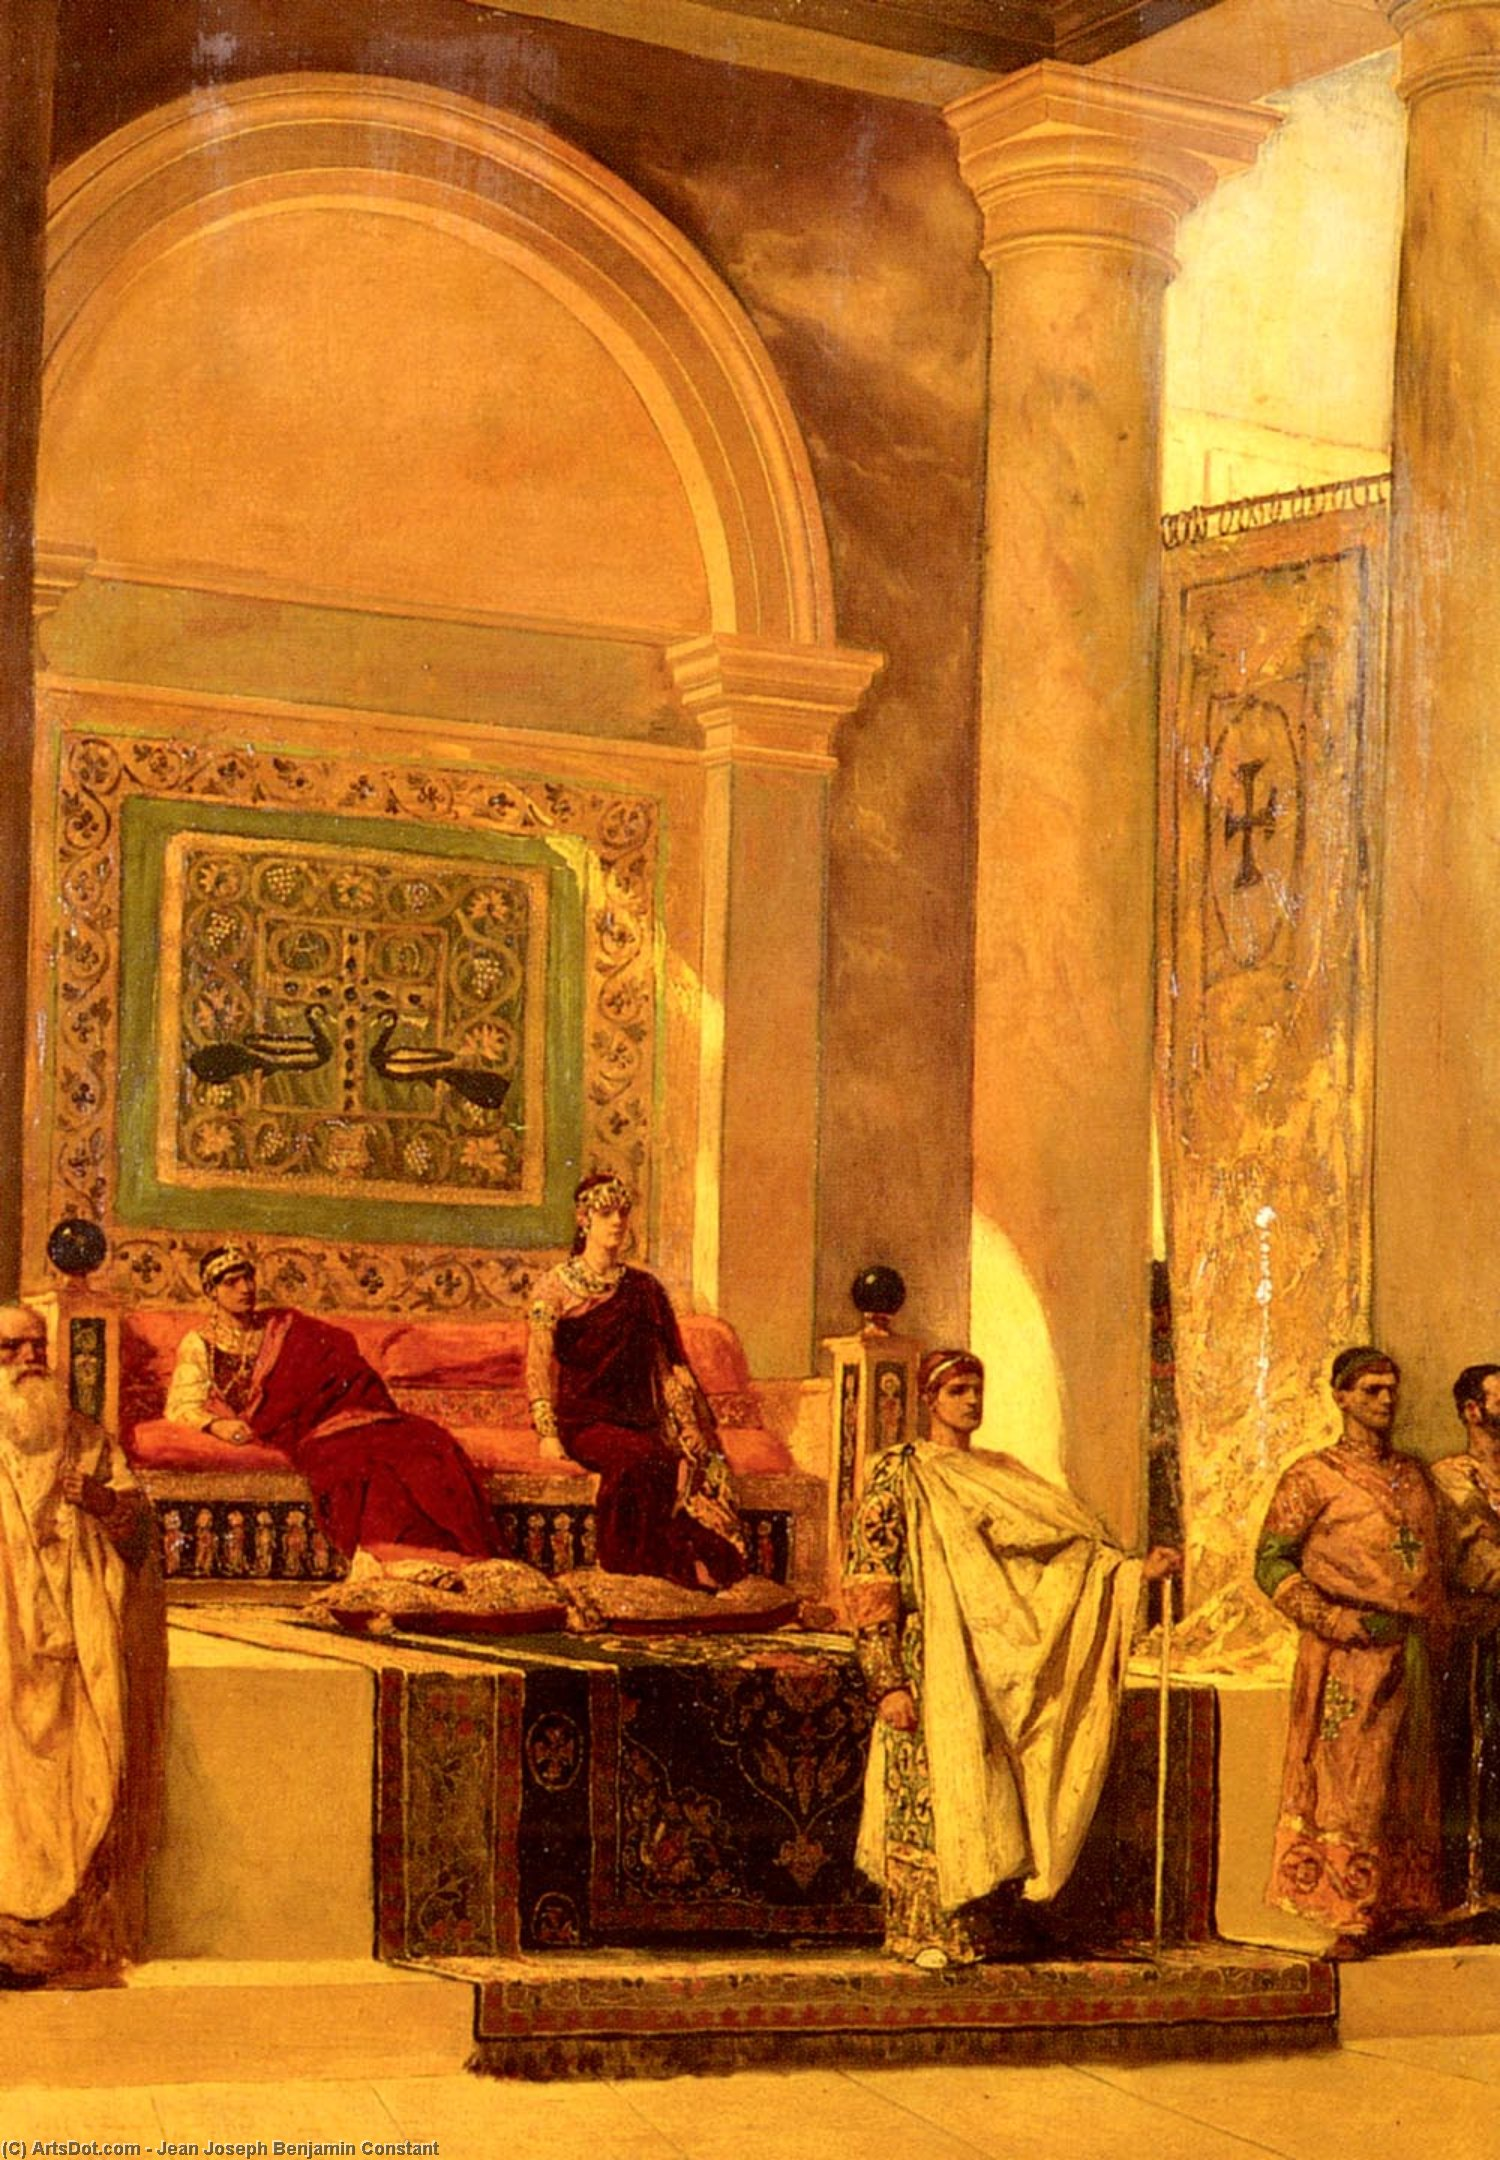 Wikioo.org - The Encyclopedia of Fine Arts - Painting, Artwork by Jean-Joseph Constant (Benjamin-Constant) - The Throne Room In Byzantium